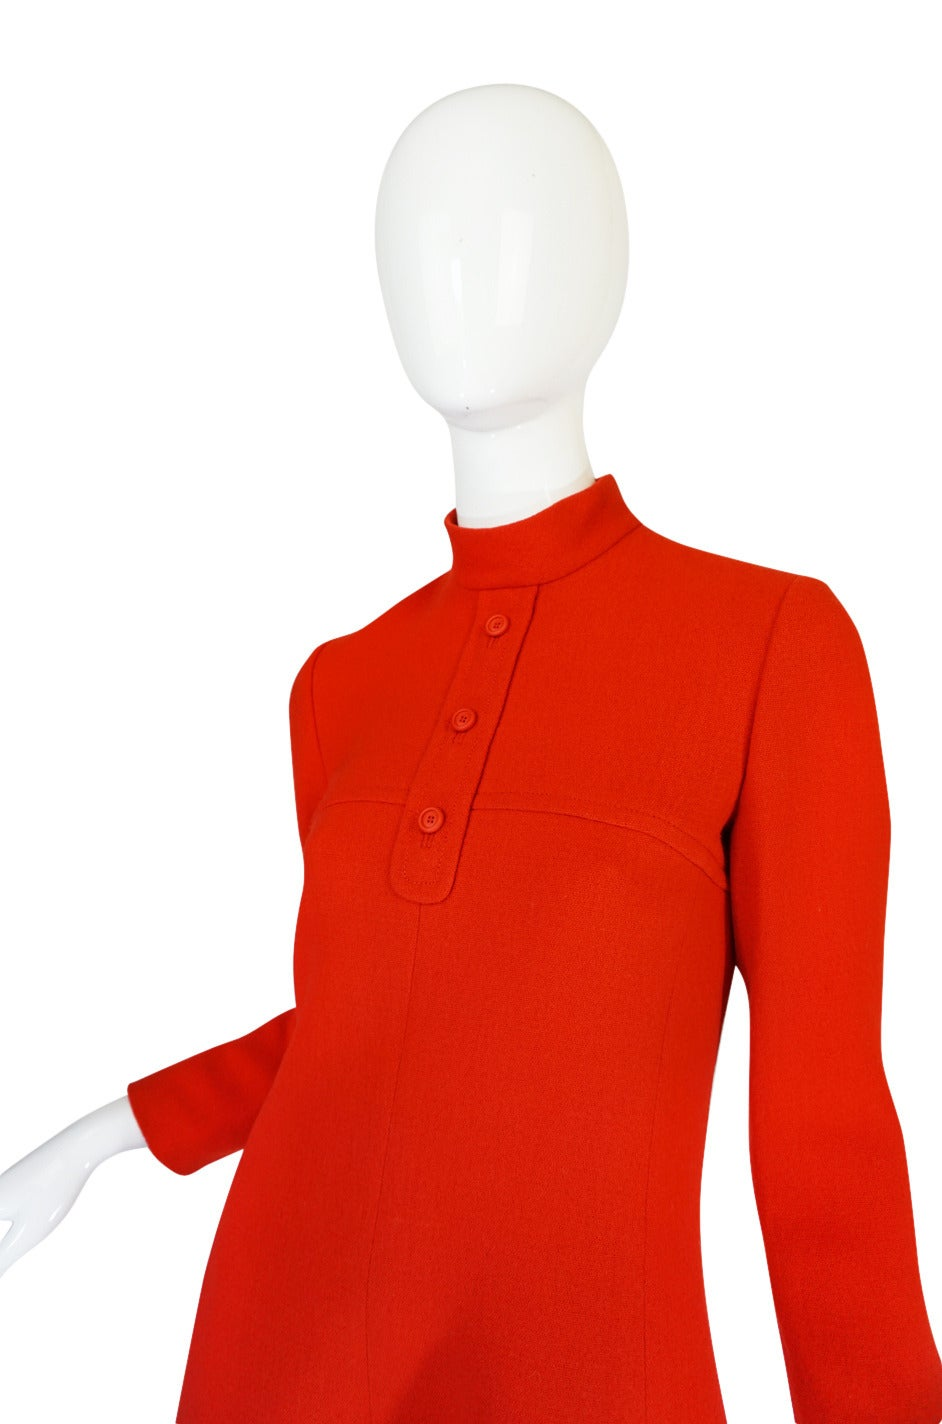 1960s Miss Dior Chic Bright Red Mod Dress For Sale 2